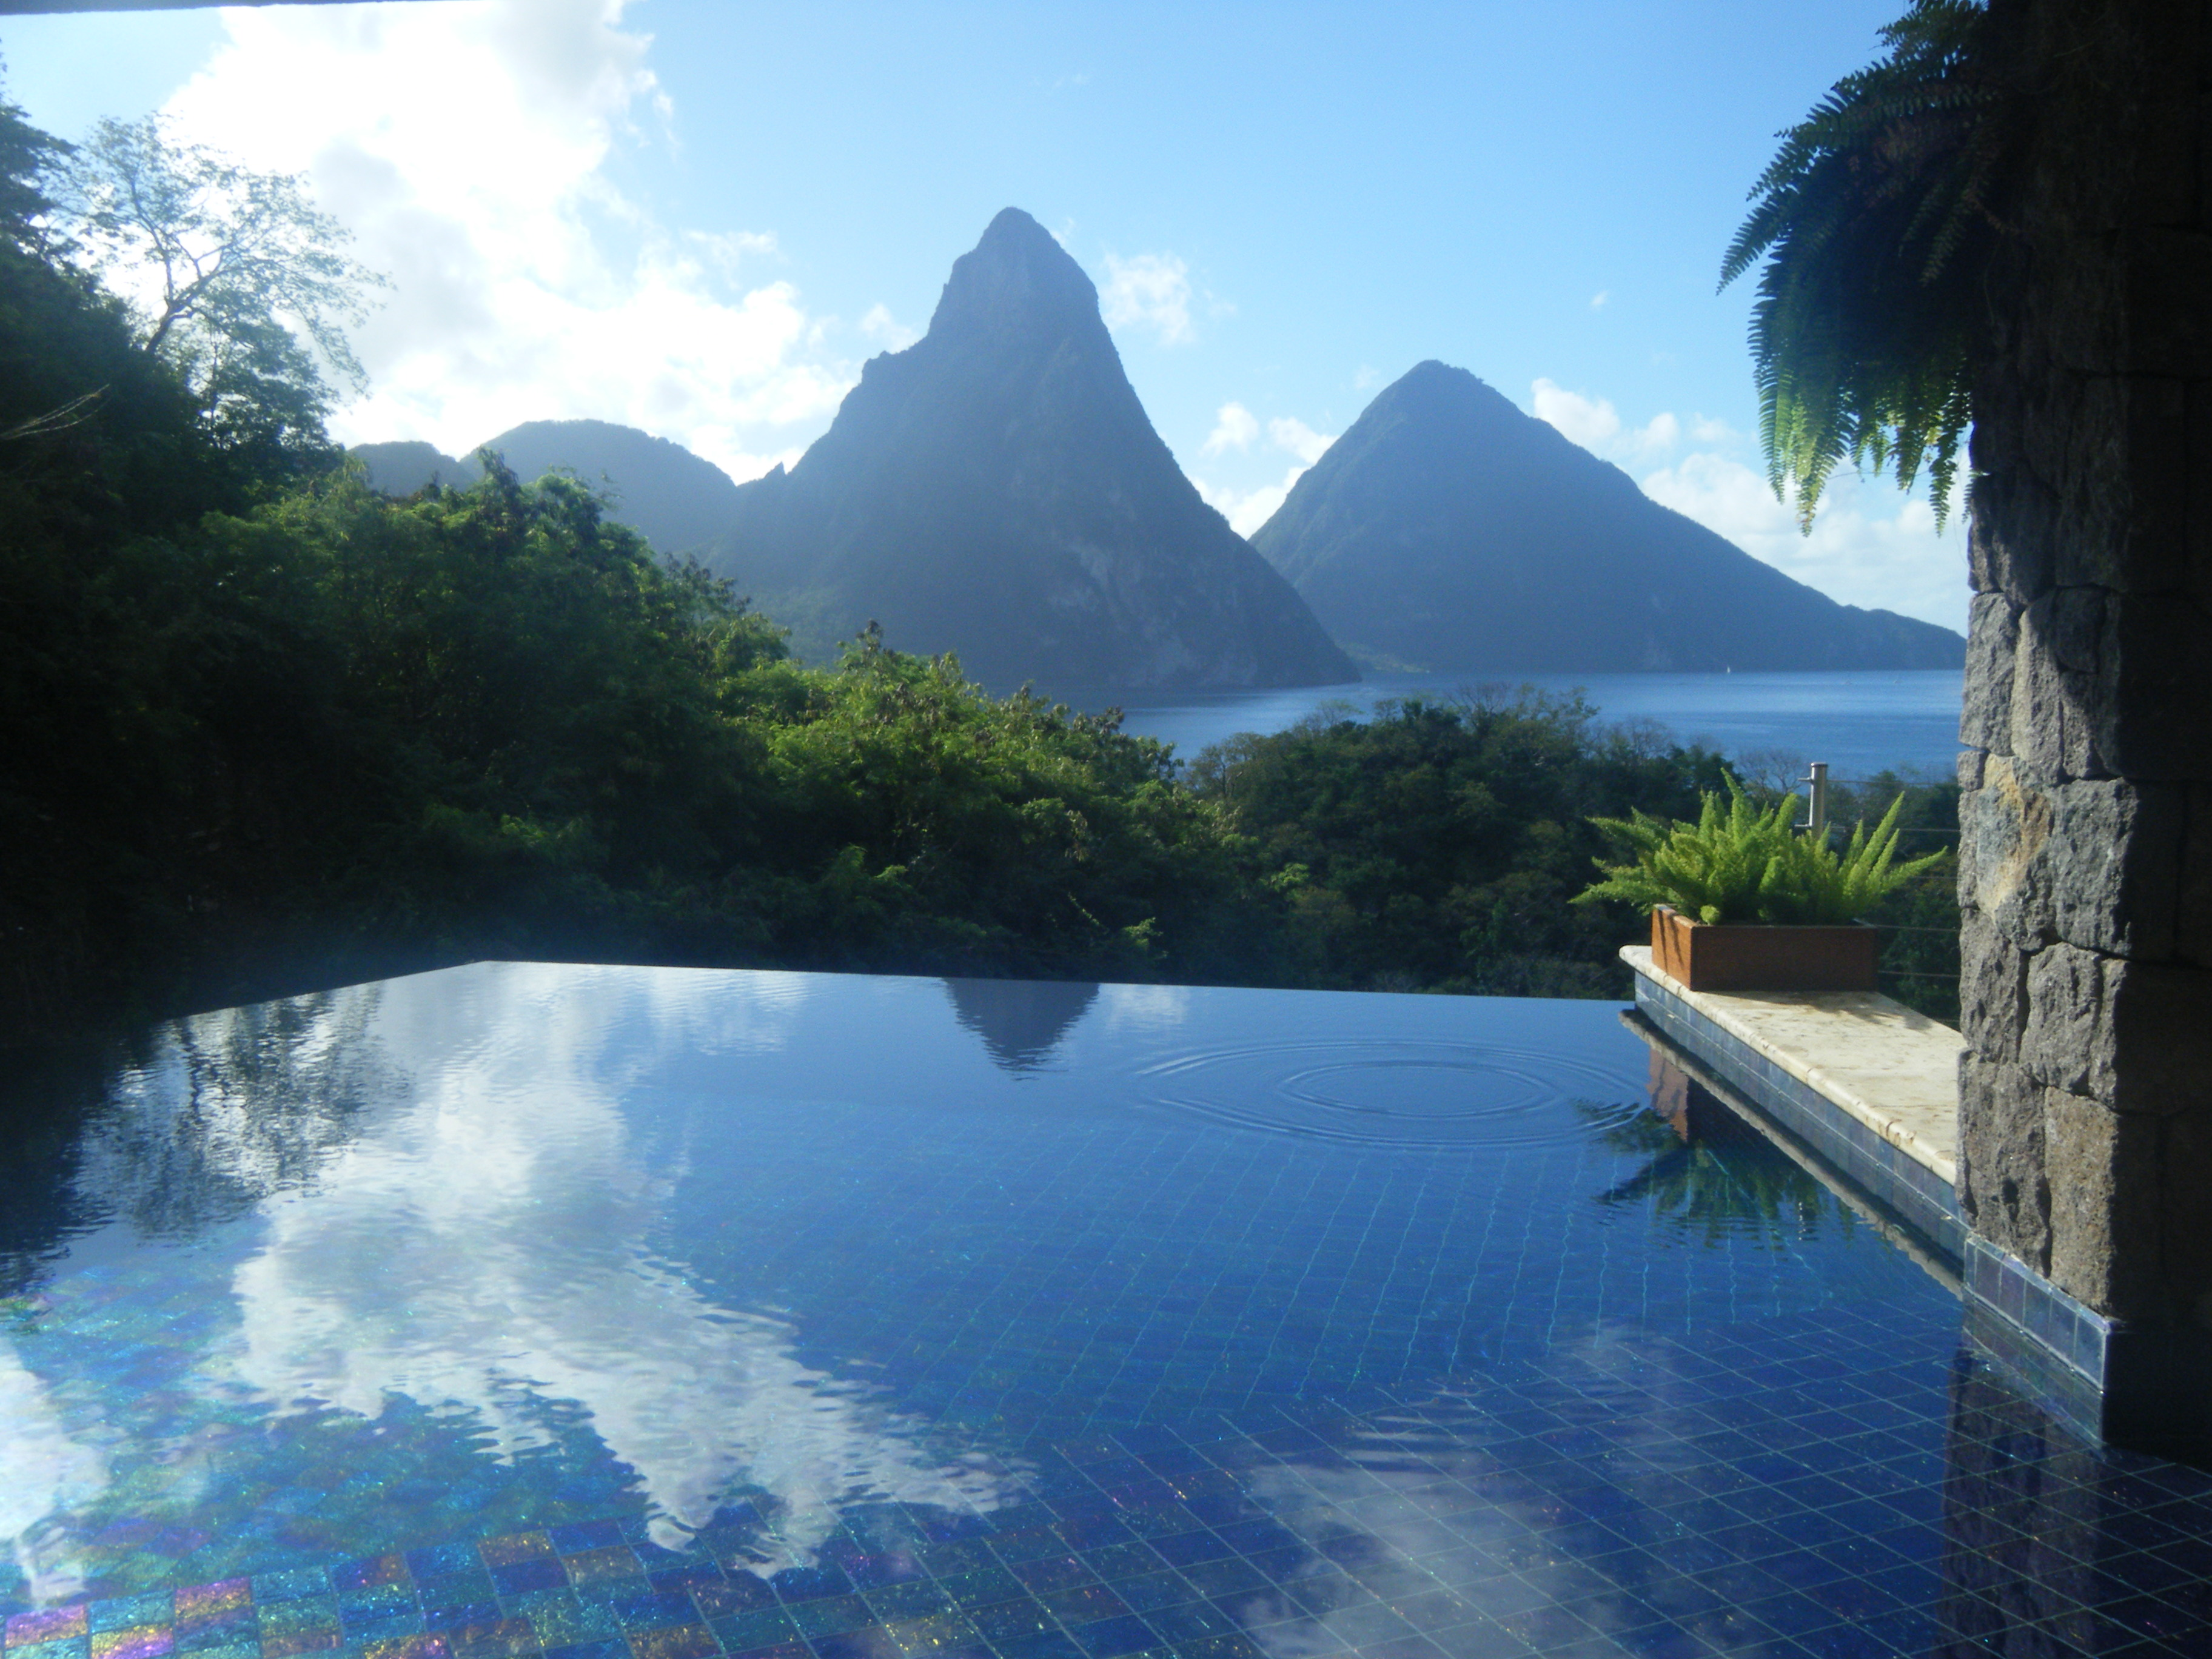 St Lucia Images Crazy Gallery 3648x2736